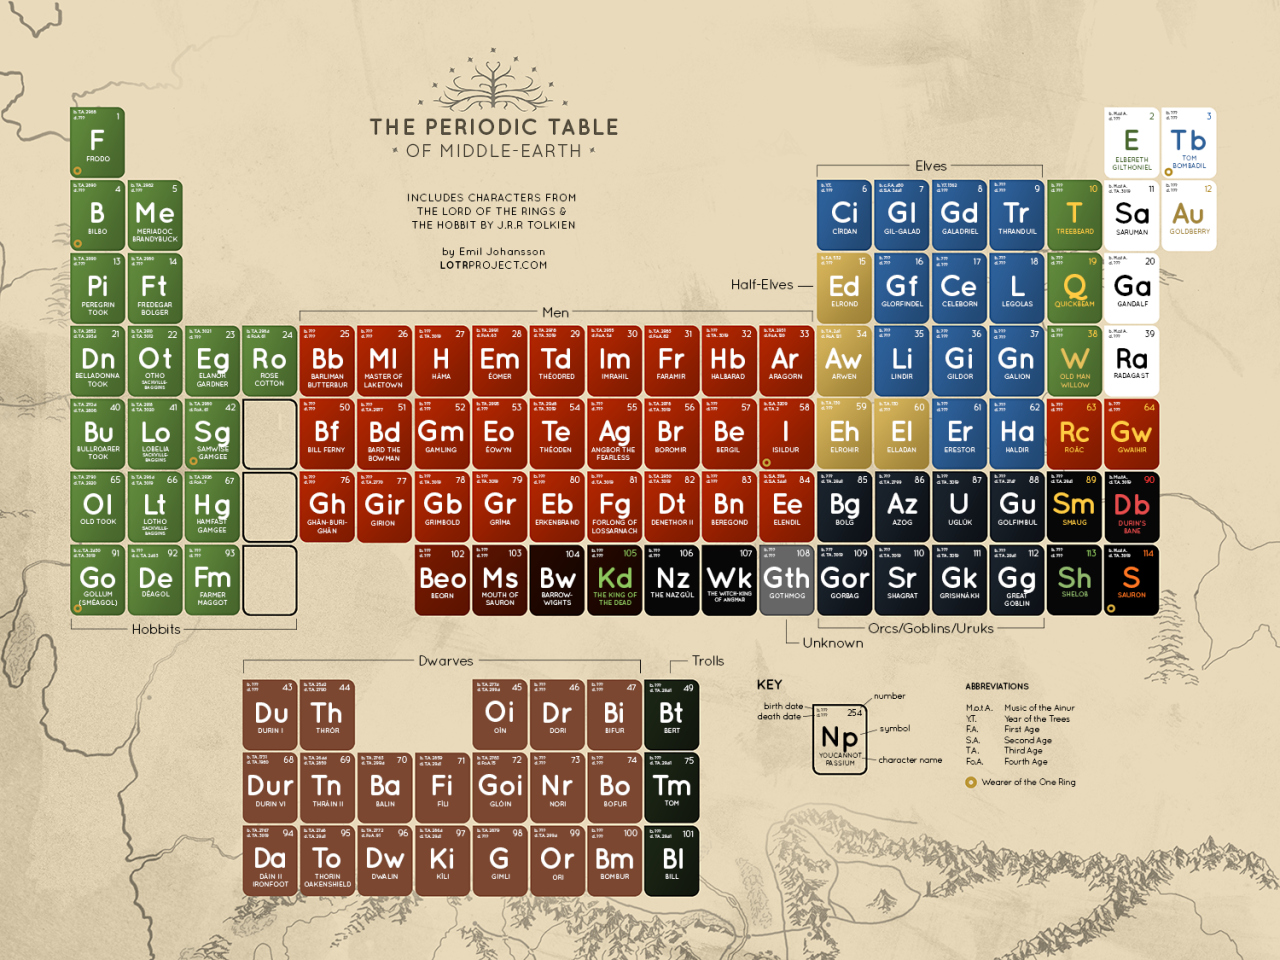 The Periodic Table Of Middle Earth Lord of the Rings + The Hobbit (via Times New Geek)